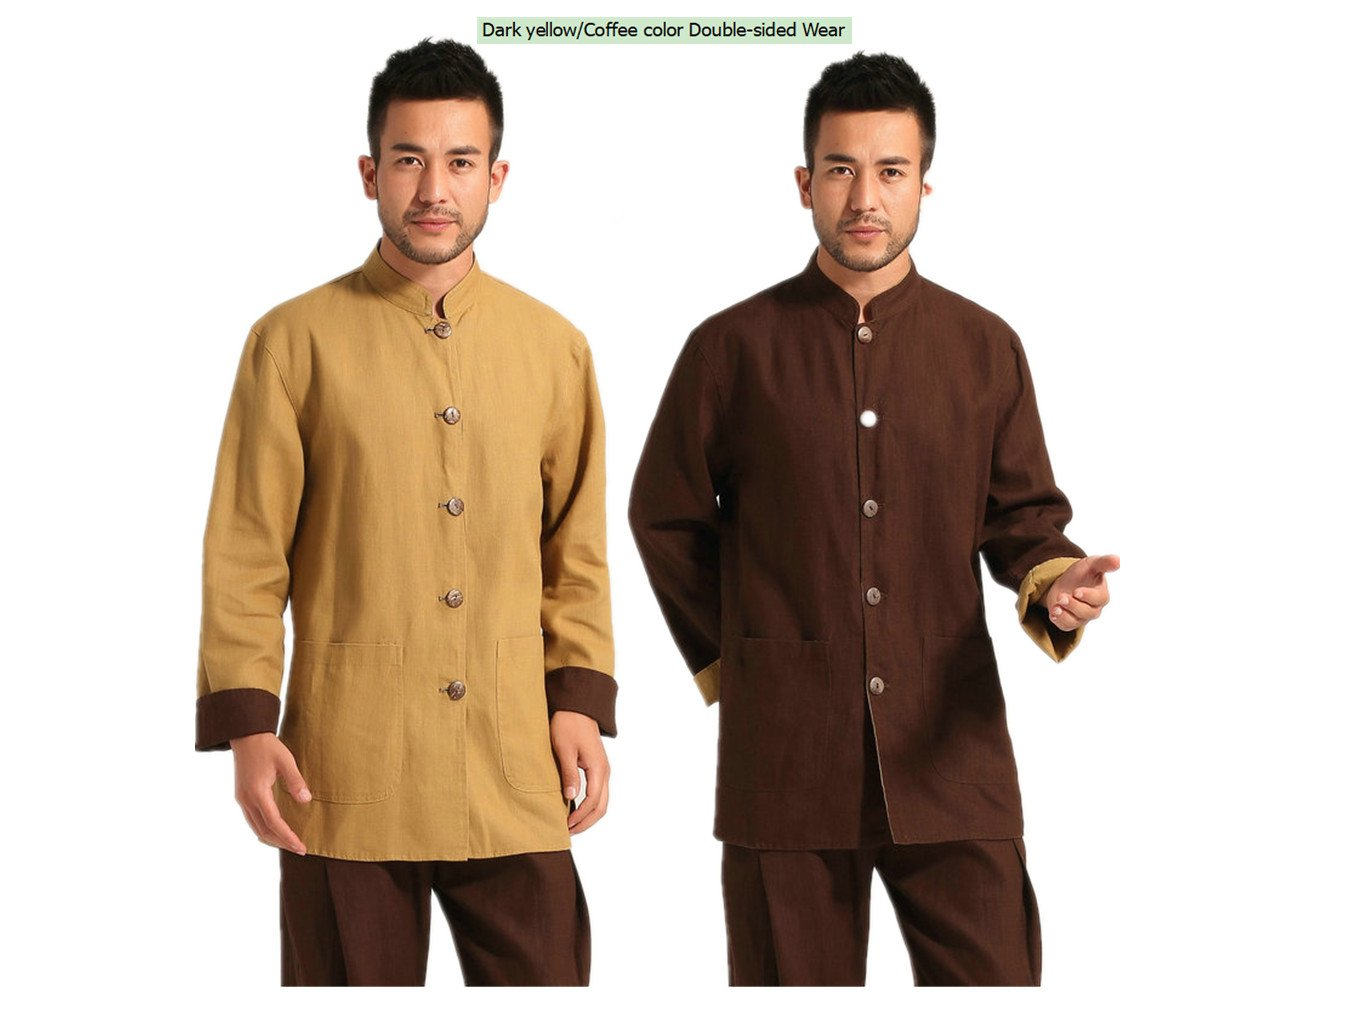 100% fiber flax Tang Suits Double-sided Wear Retro Jackets Business Jackets